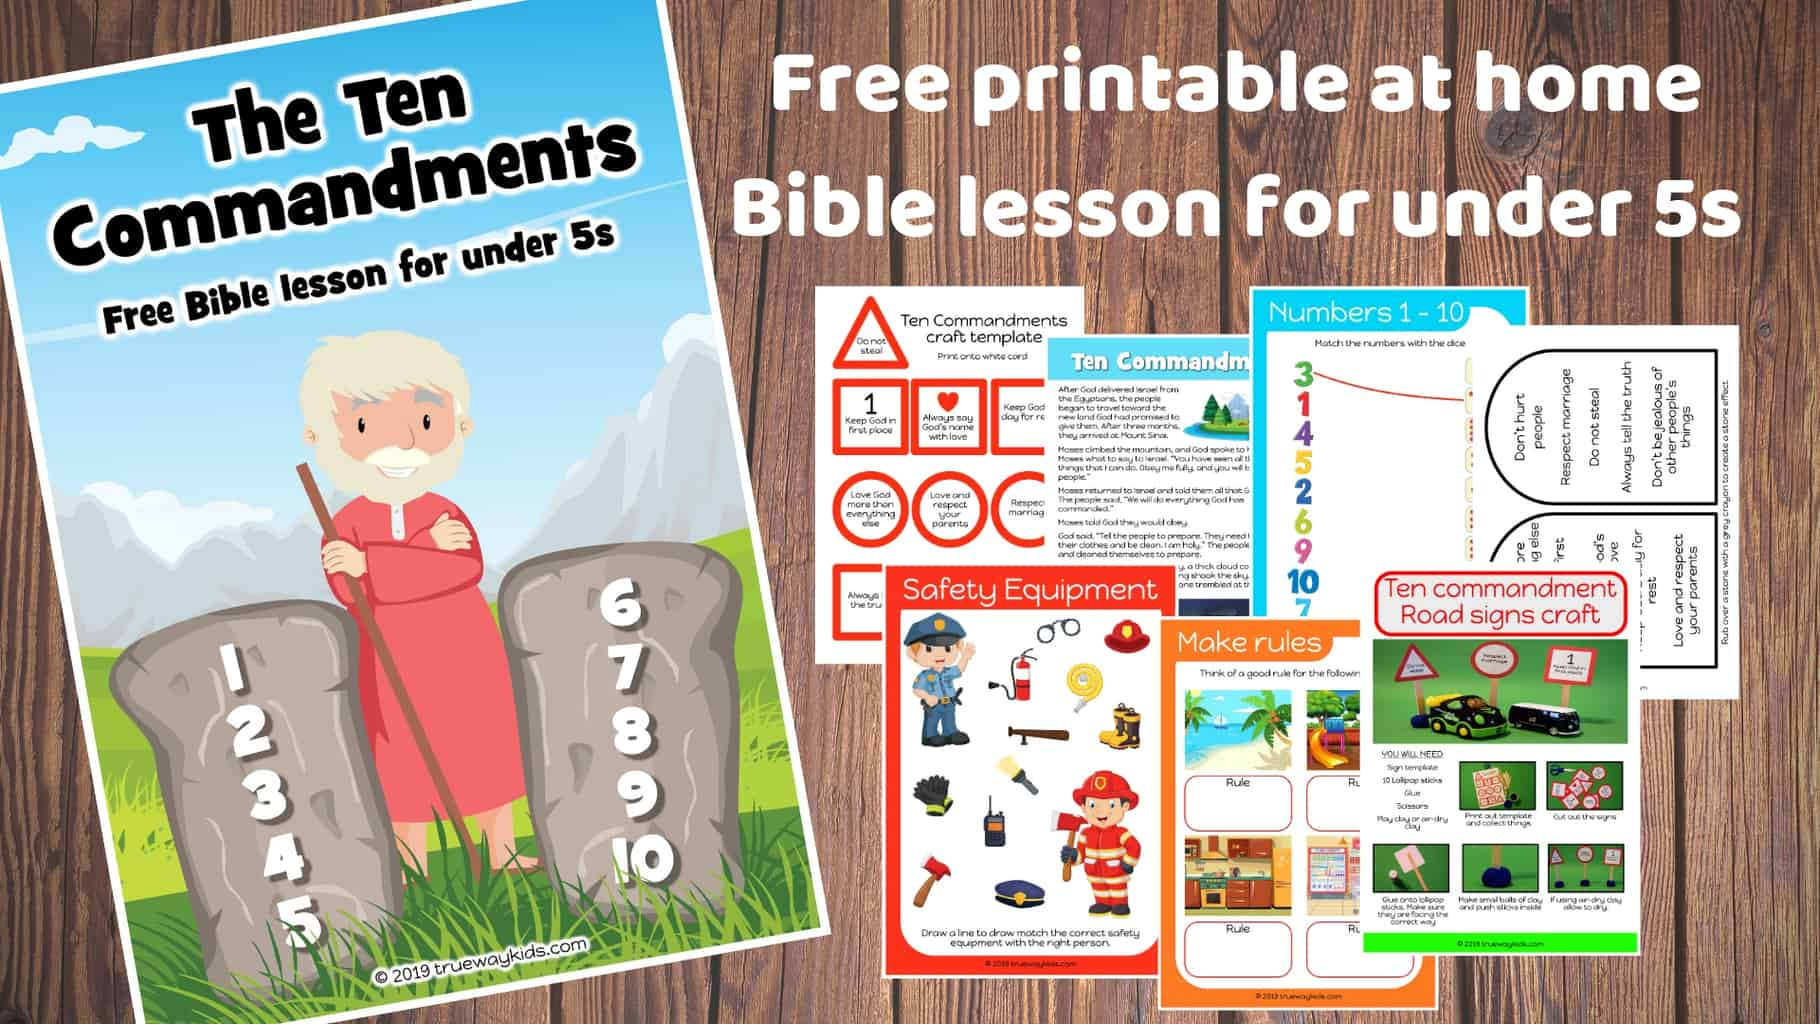 photo regarding The Ten Commandments Printable referred to as The 10 Commandments - Totally free Bible lesson for beneath 5s